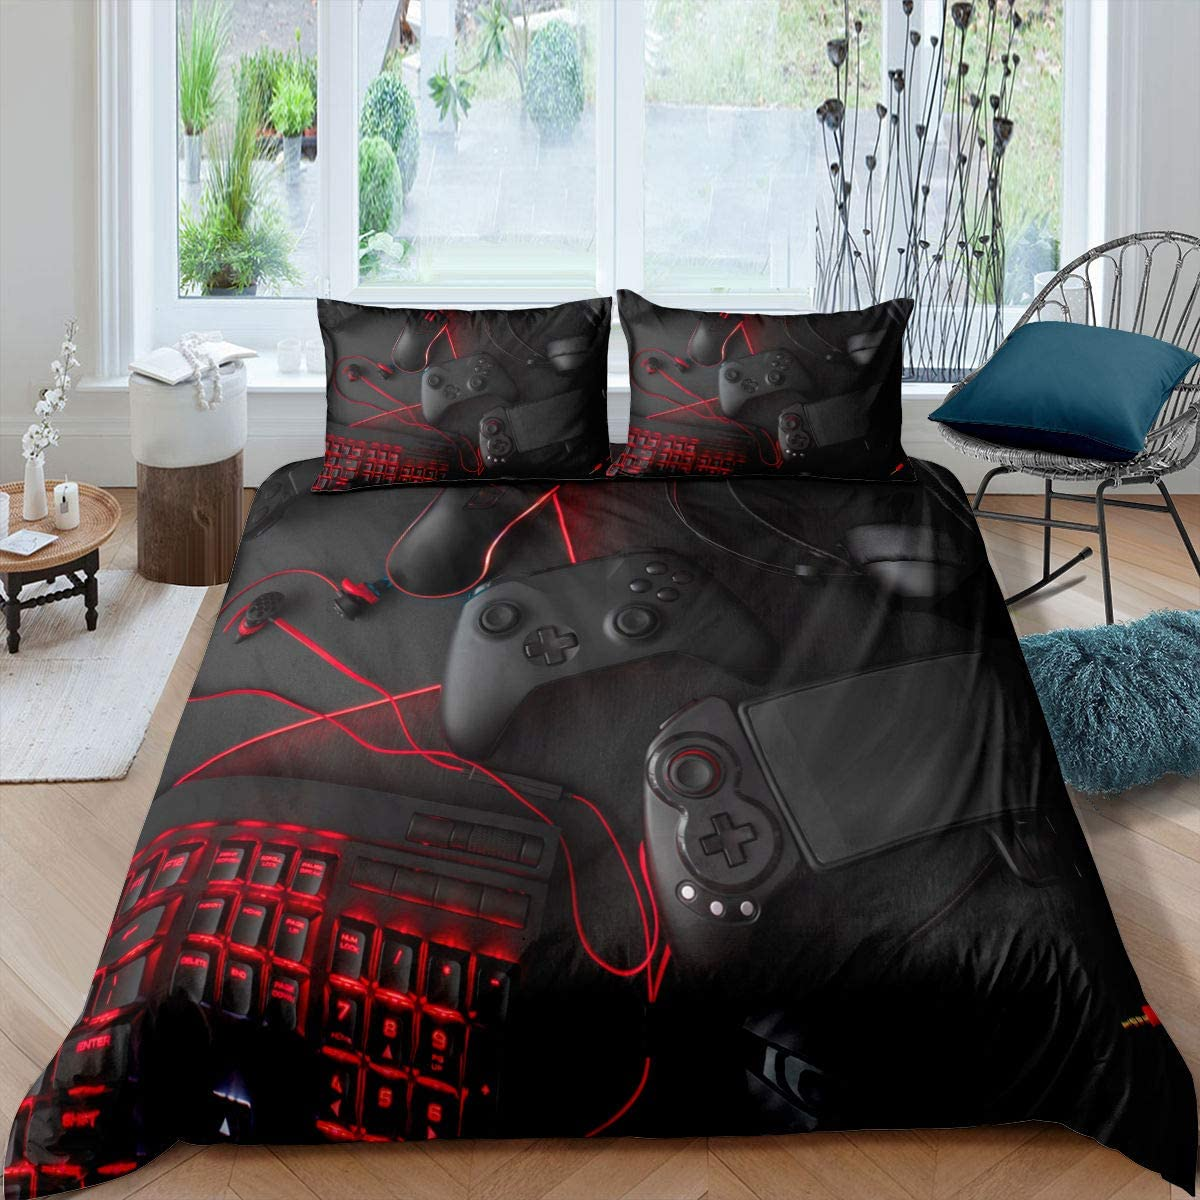 Game Comforter Cover Twin Size Gamepad Bedding Set Game Console Modern Sci-Fi Style Duvet Cover for Teen Boys Player Video Game Controller Quilt Set with Zipper Ties,1 Duvet Cover with 1 Pillowcase